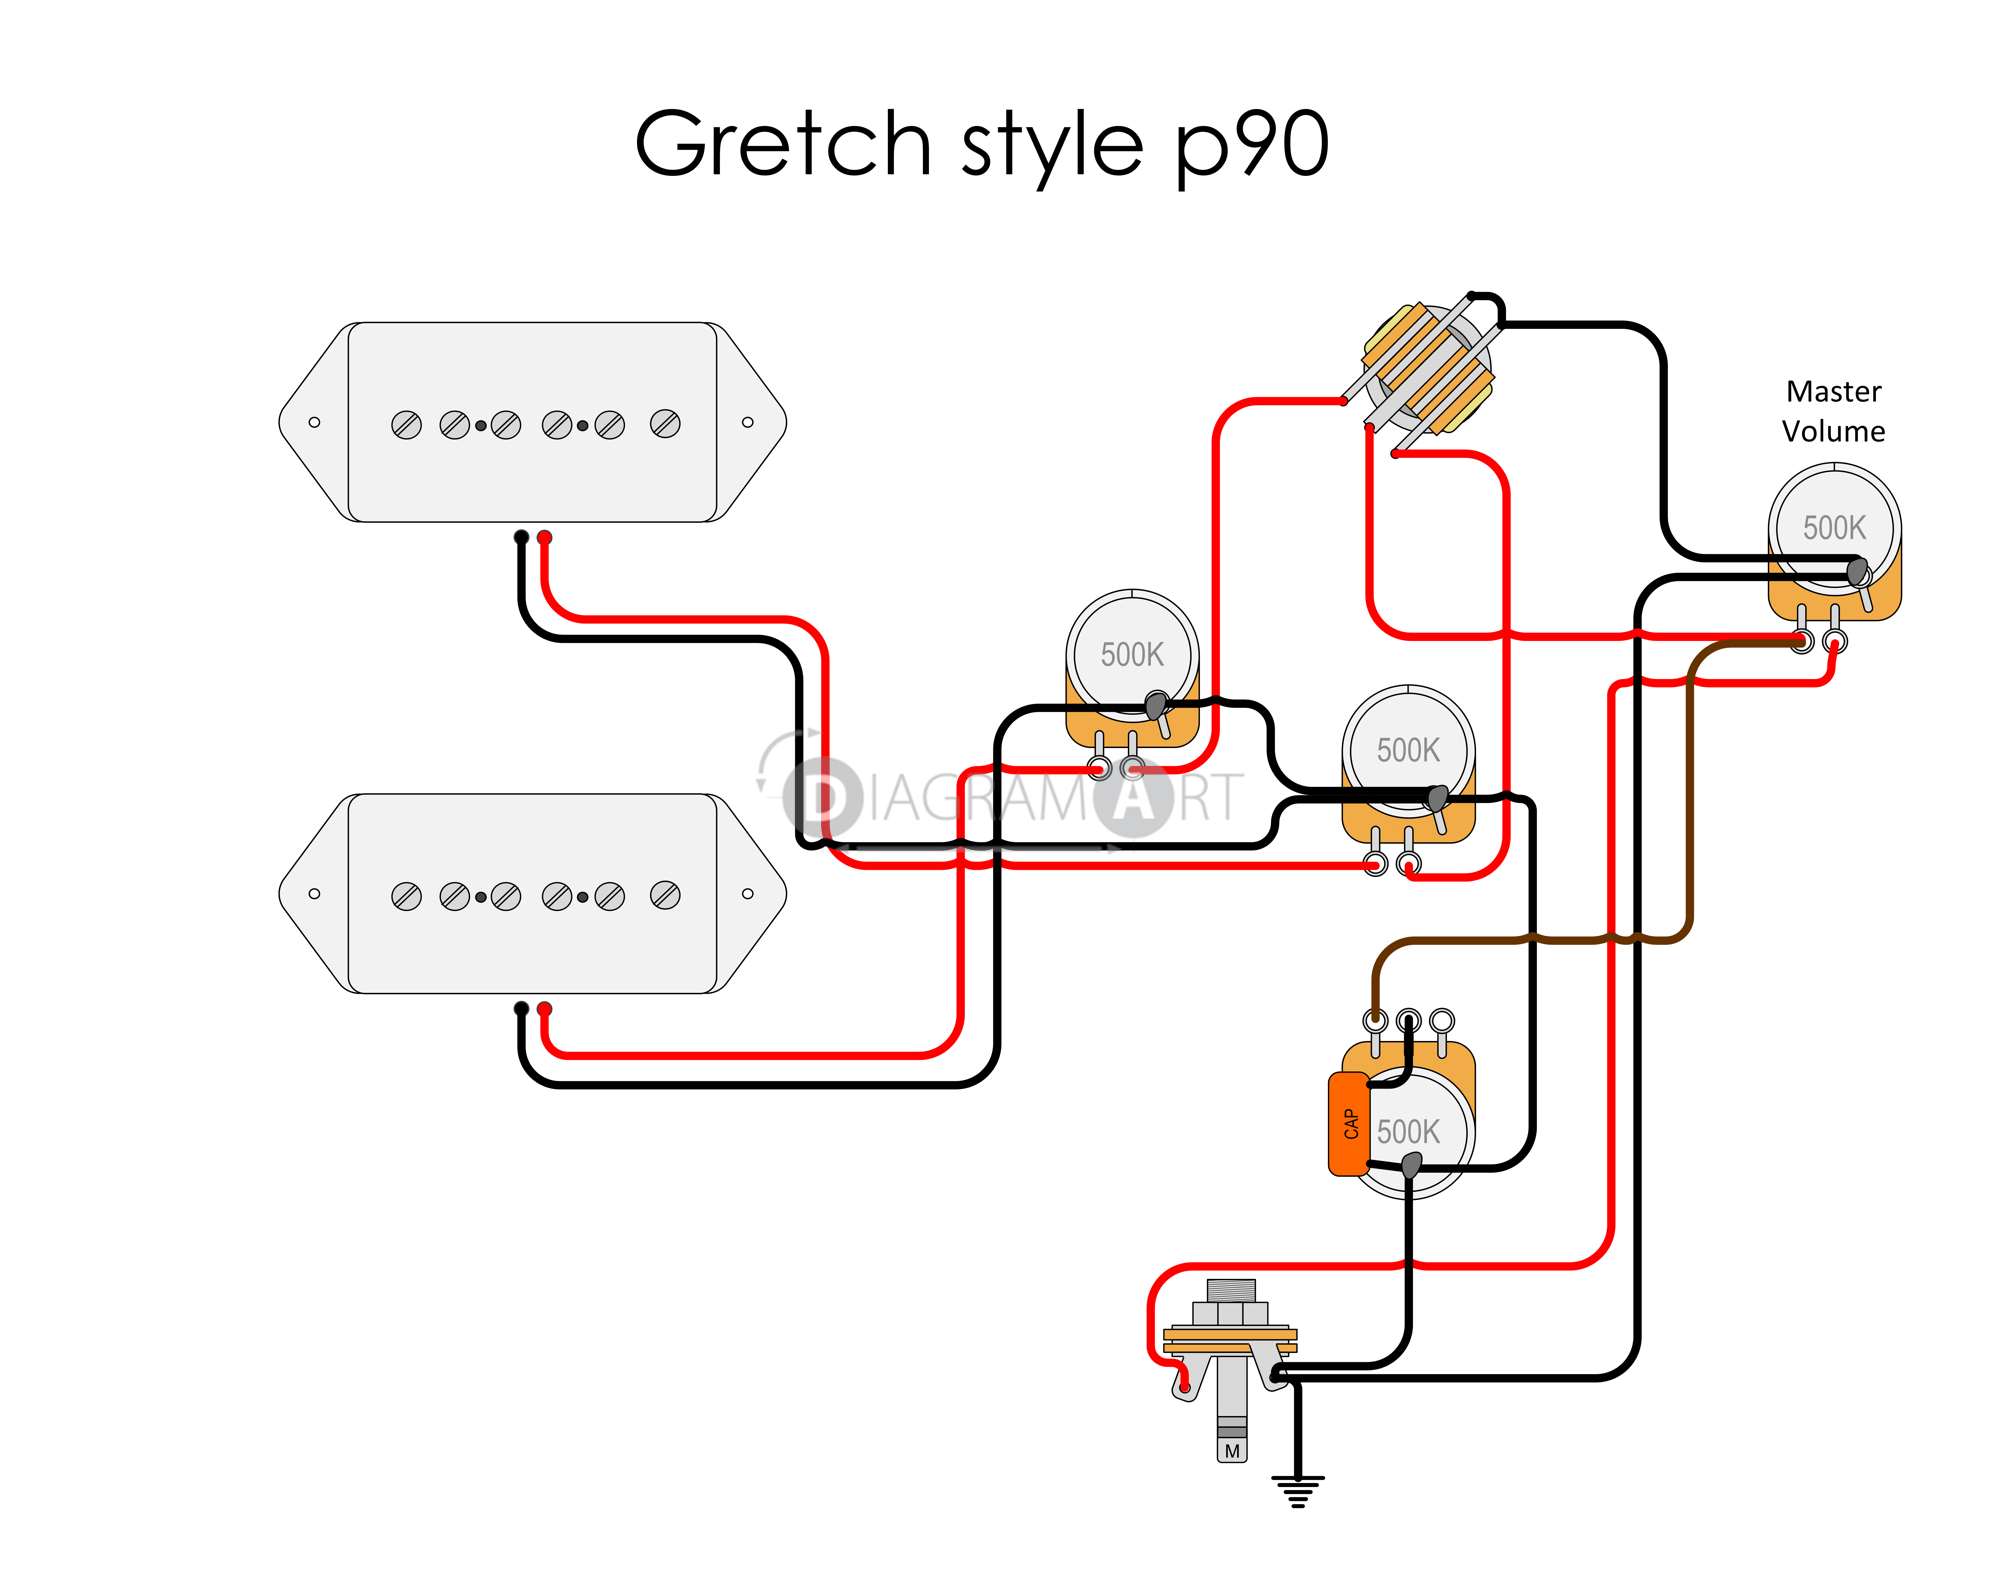 electric guitar wiring gretch style p90 [electric circuit] \u2013 diagramartelectric guitar wiring gretch style p90 [electric circuit] , free sketch diagramart